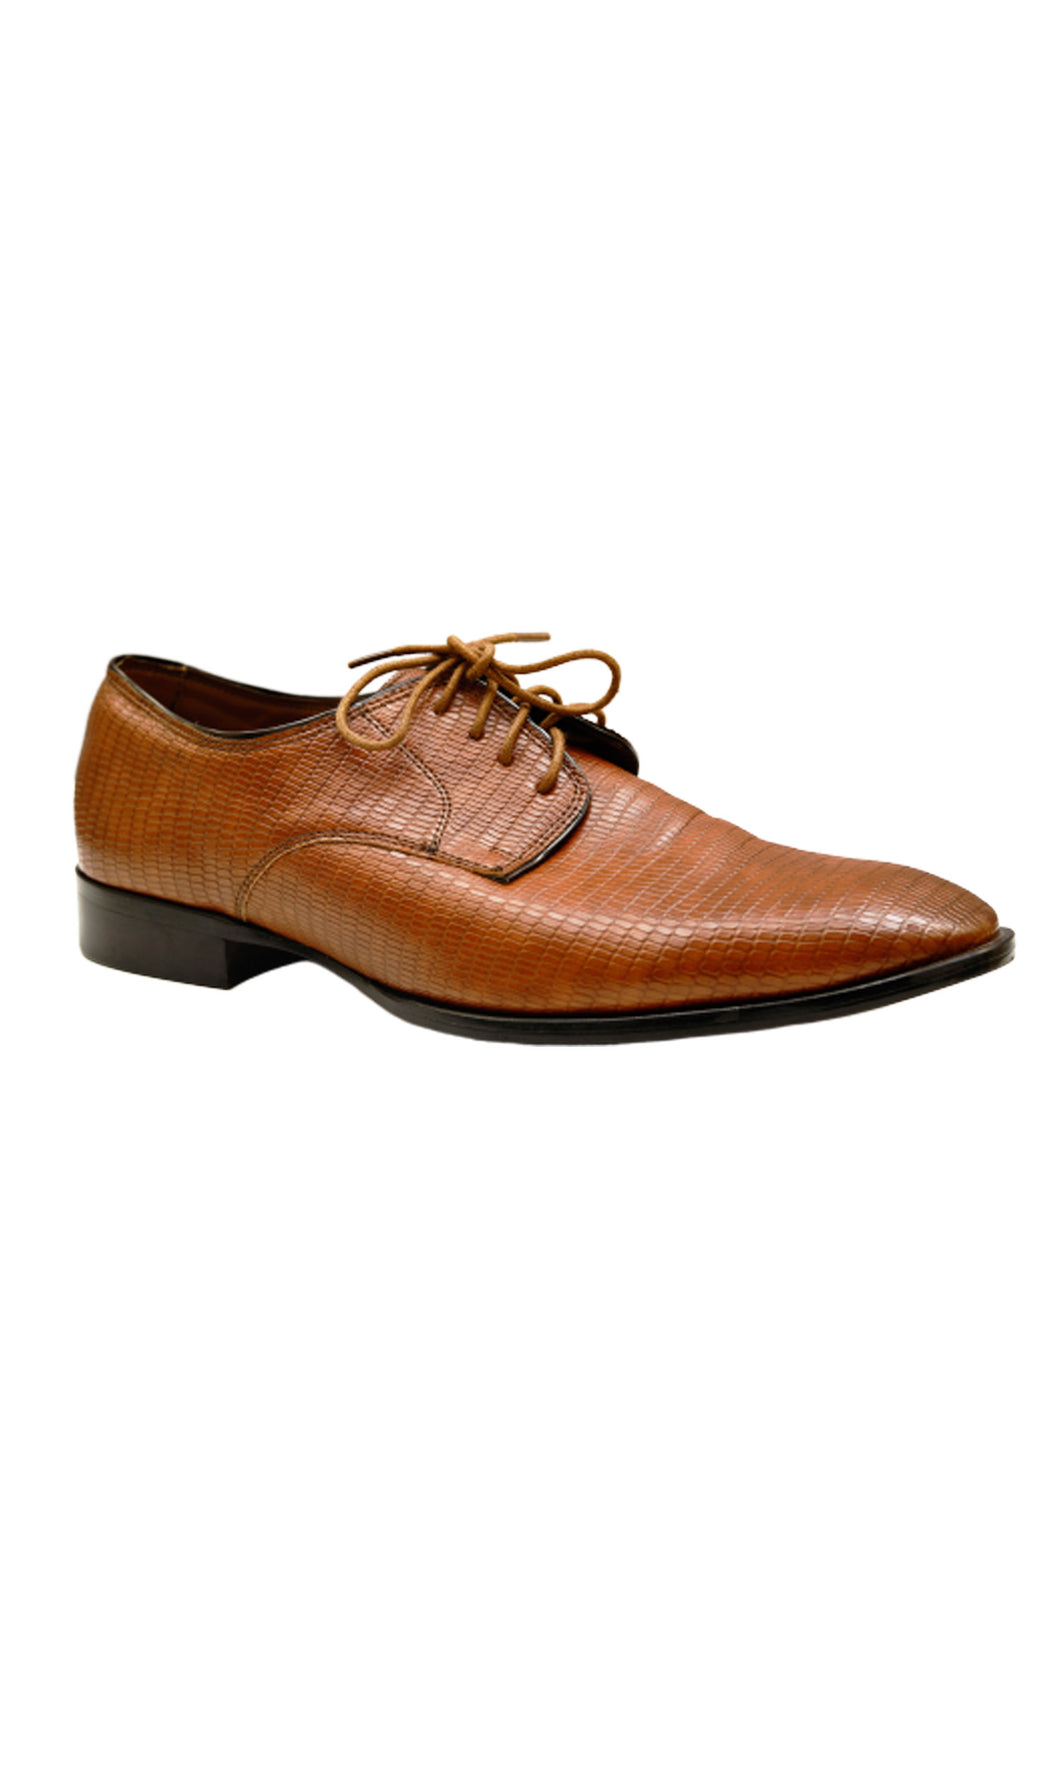 Men Brown Patterned Formal Brogues